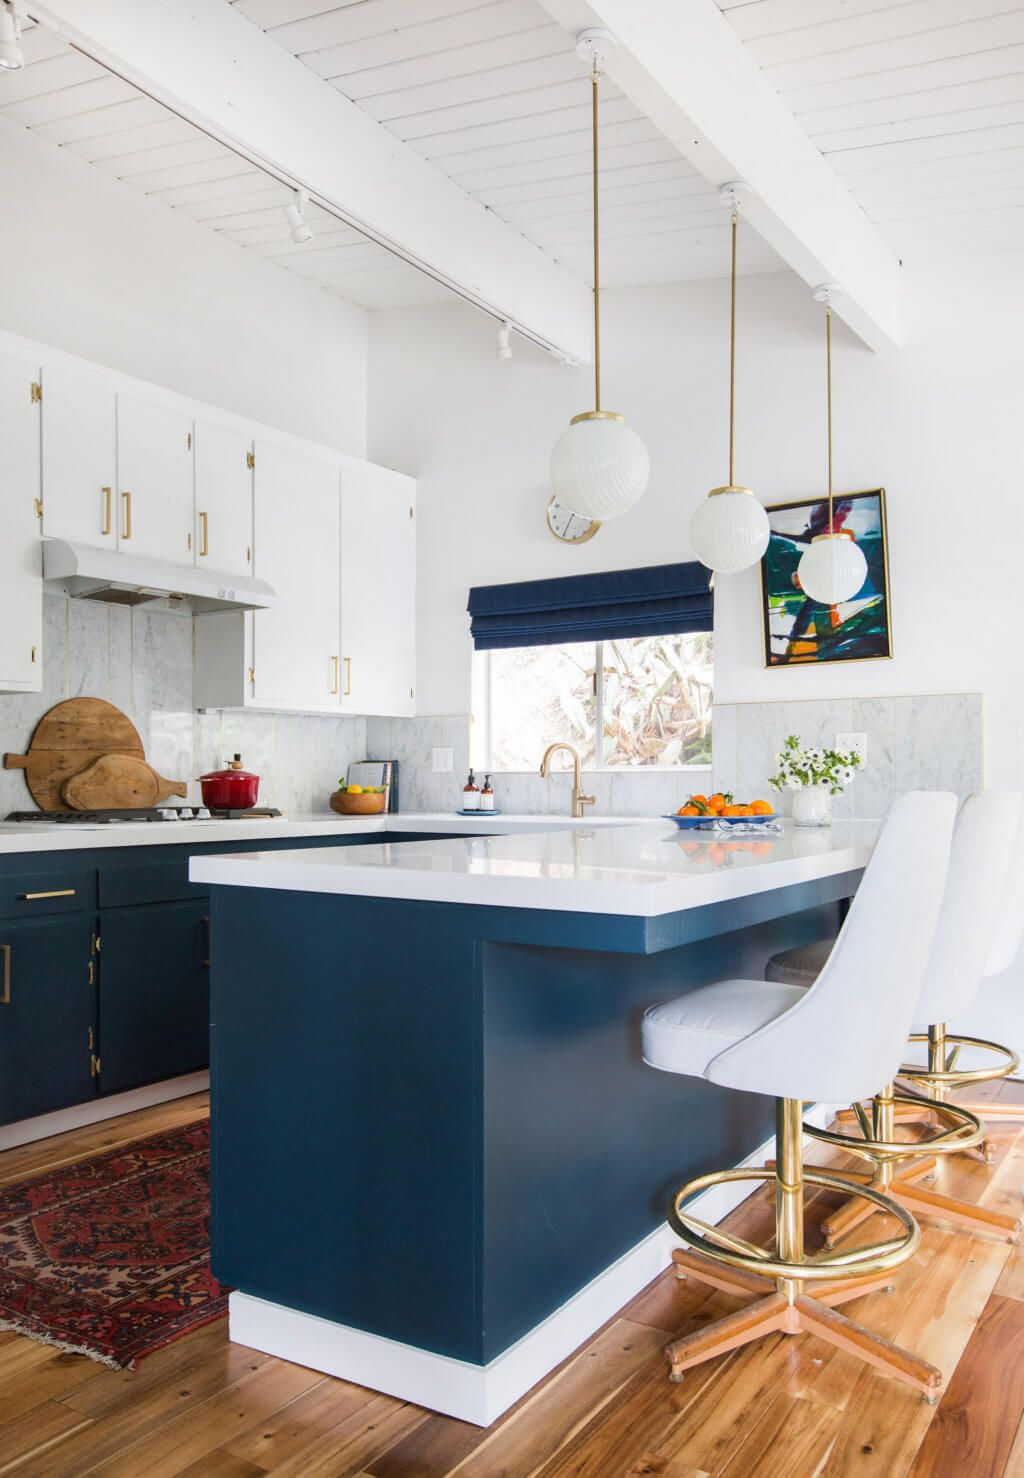 Our First Home: A Look Back And Full House Tour | Kitchens Regarding Schutt 4 Light Kitchen Island Pendants (View 15 of 30)